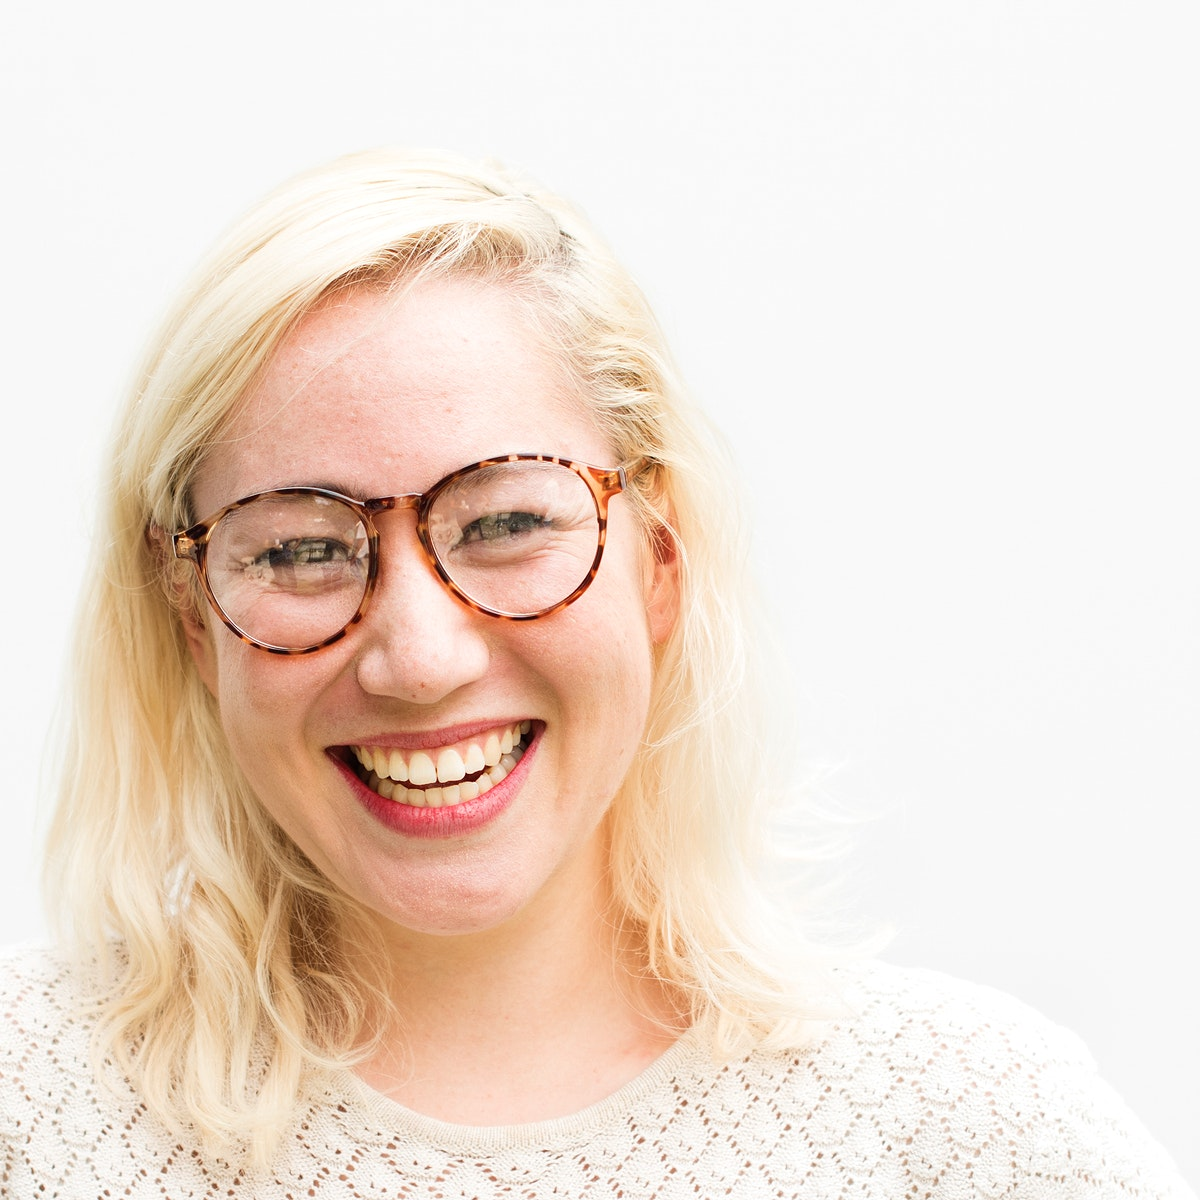 Blonde woman with a bright smile portrait